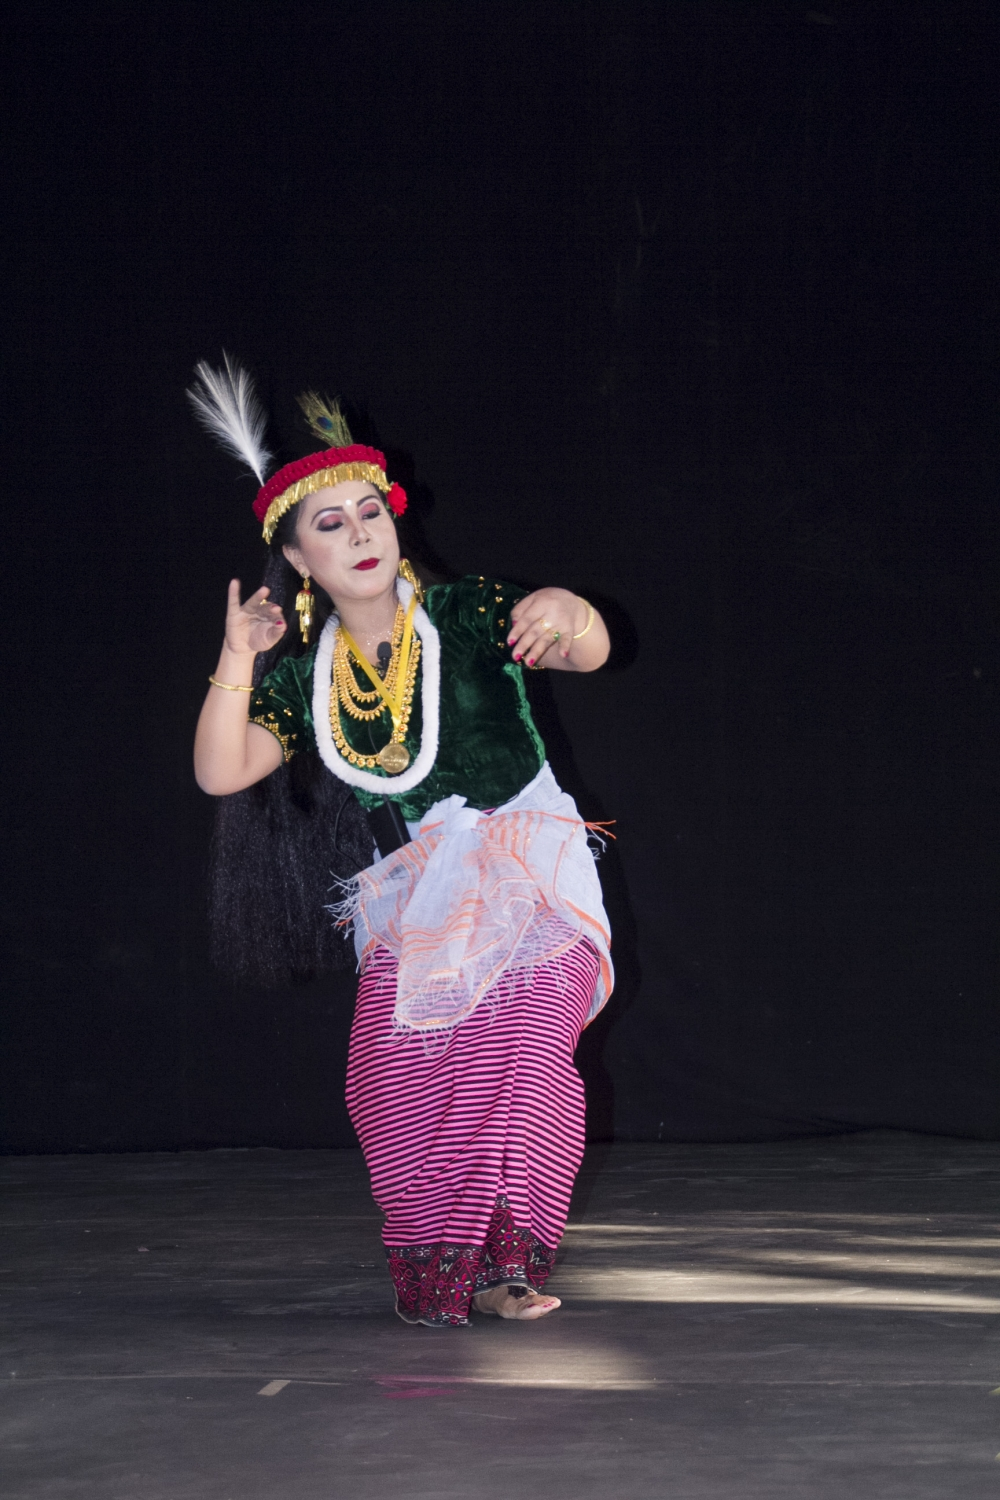 Fig. 1: A dancer performs the Khamba Thoibi dance, a thougal jagoi (dance in service of gods) performed during the Lai Haraoba (pleasing of the gods) festival, Manipur. Thoibi's ensemble includes a phanek mayek naibi (striped phanek with embroidered borders), resom phurit (blouse made of dark green glossy fabric, embellished with sequins), white khwangyet (waistcloth) knotted at the centre, kajenglei (a red headdress with golden fringes and a peacock feather tucked on top) (Courtesy: Jawaharlal Nehru Manipur Dance Academy (JNMDA), Imphal).